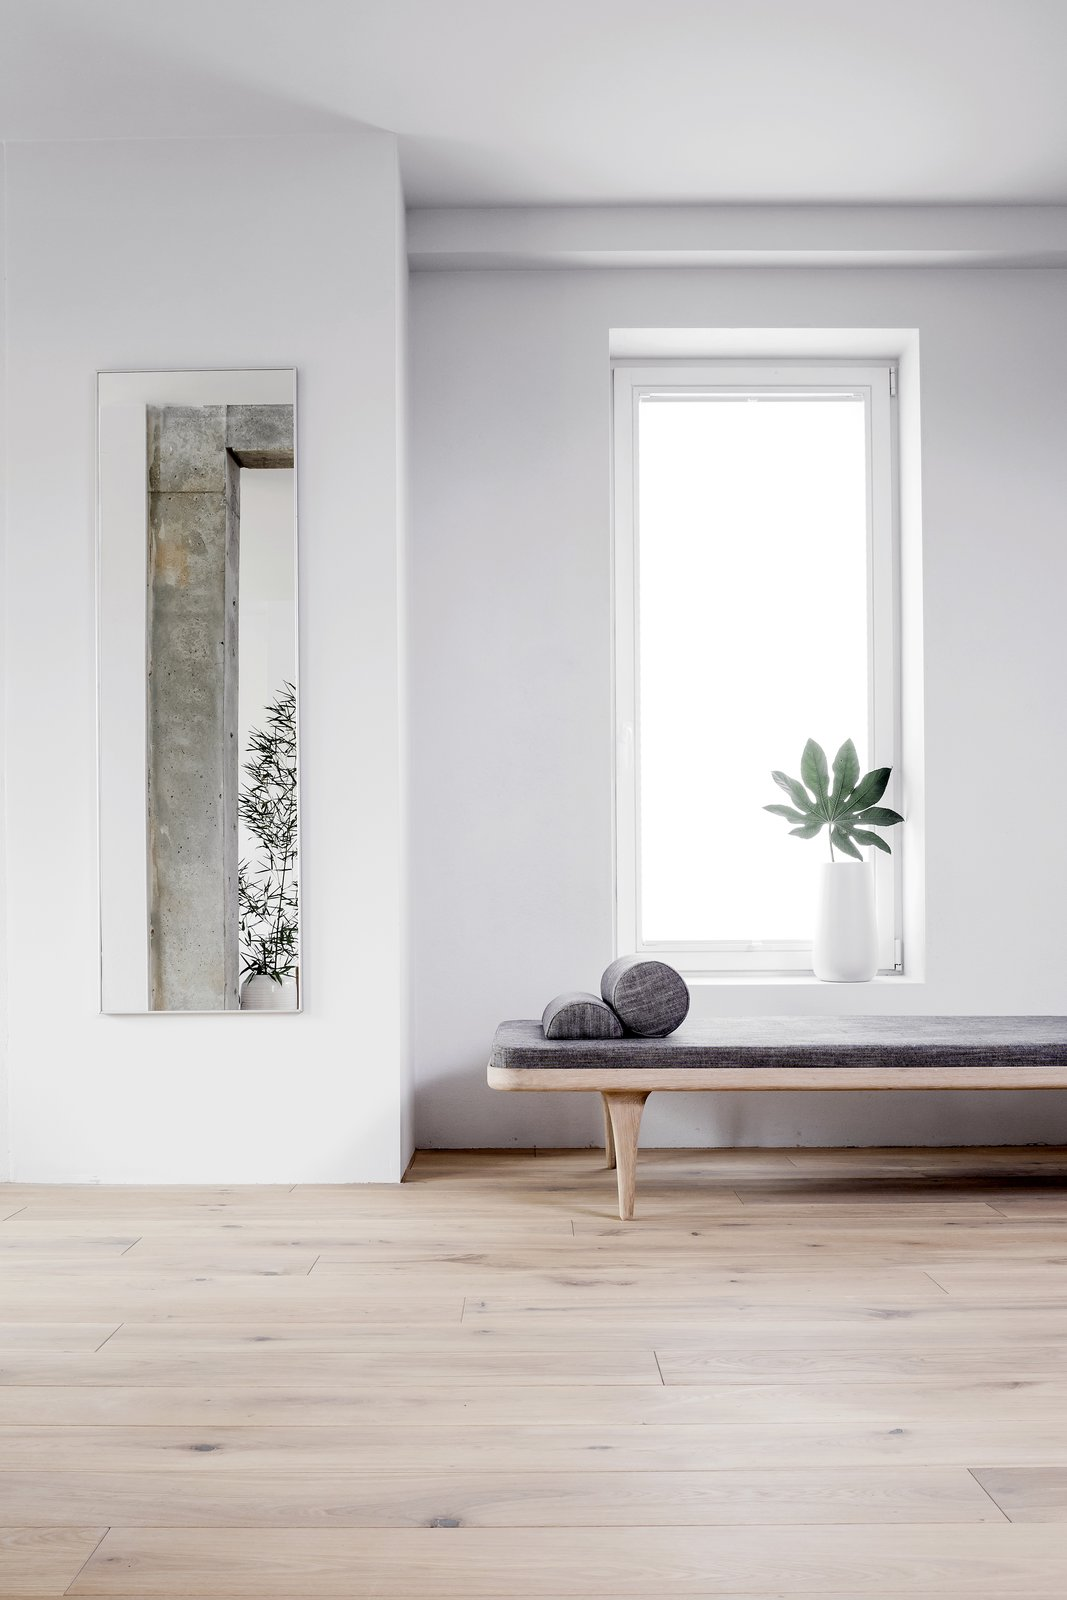 Photo 12 of 12 in A Family's Loft in Poland Gets a Minimalist Renovation That's Both Elegant and Functional